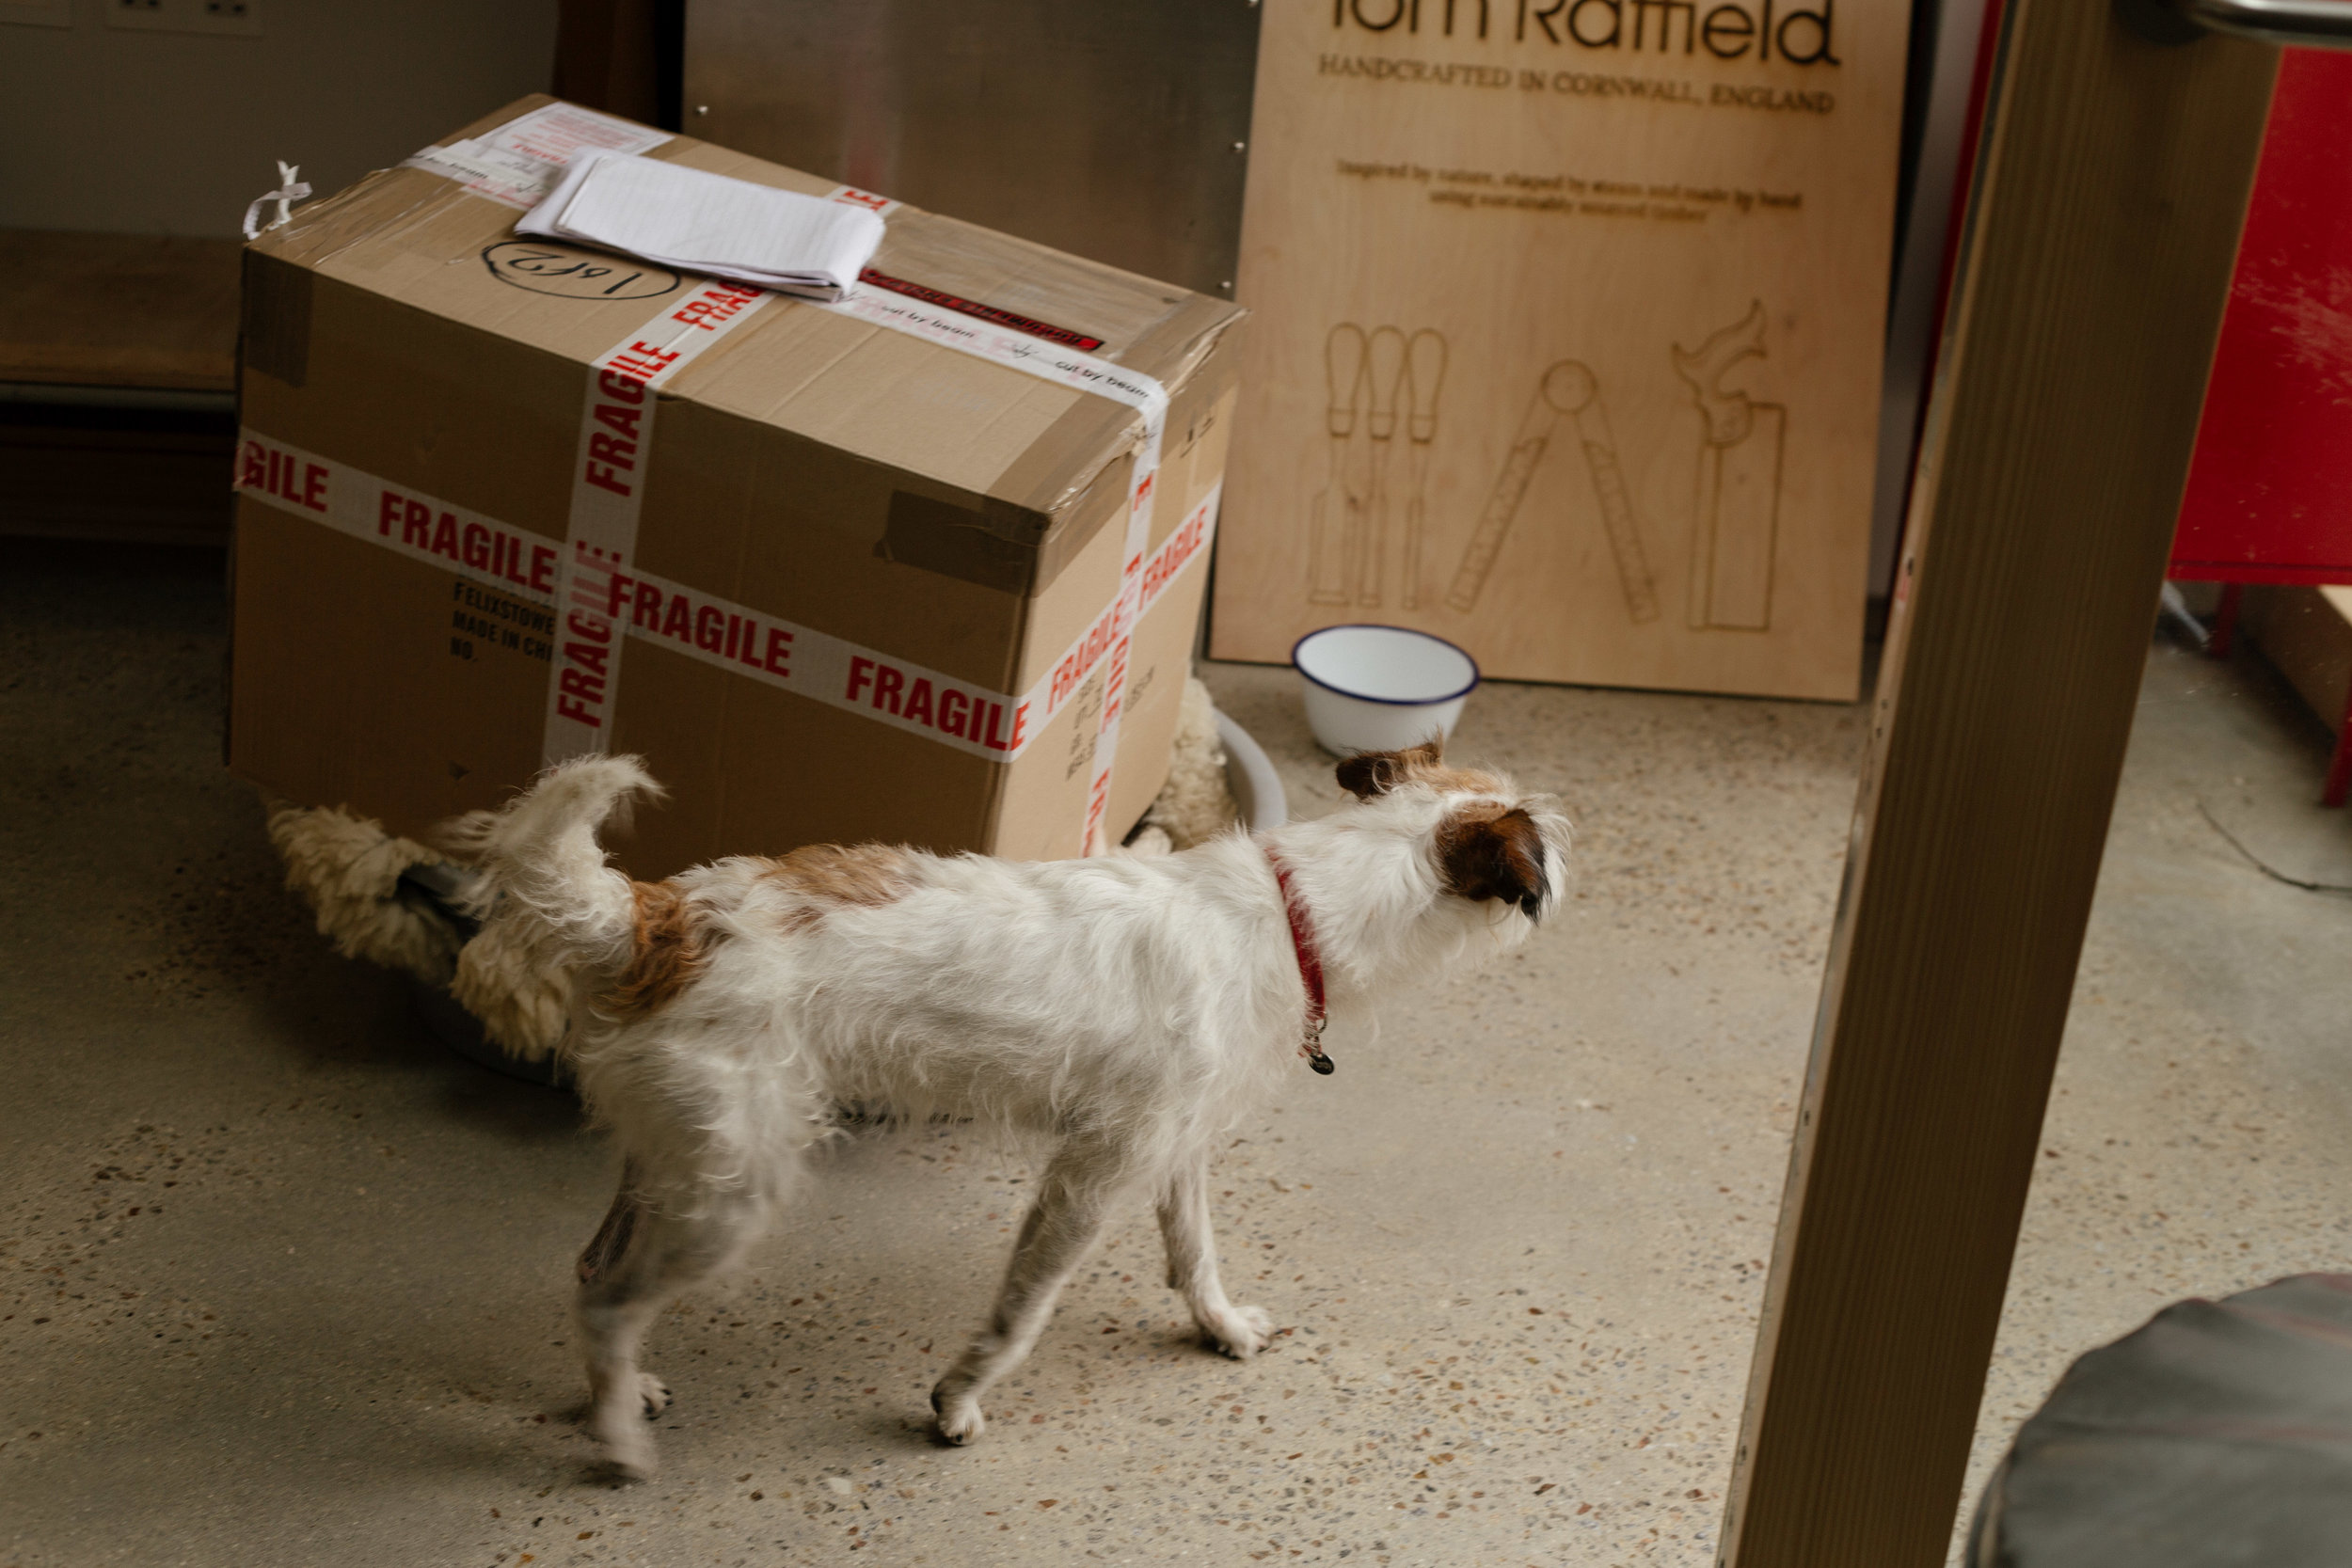 Jenny's terrier, Purdy, stands amongst Cut by Beam's boxes and signage.